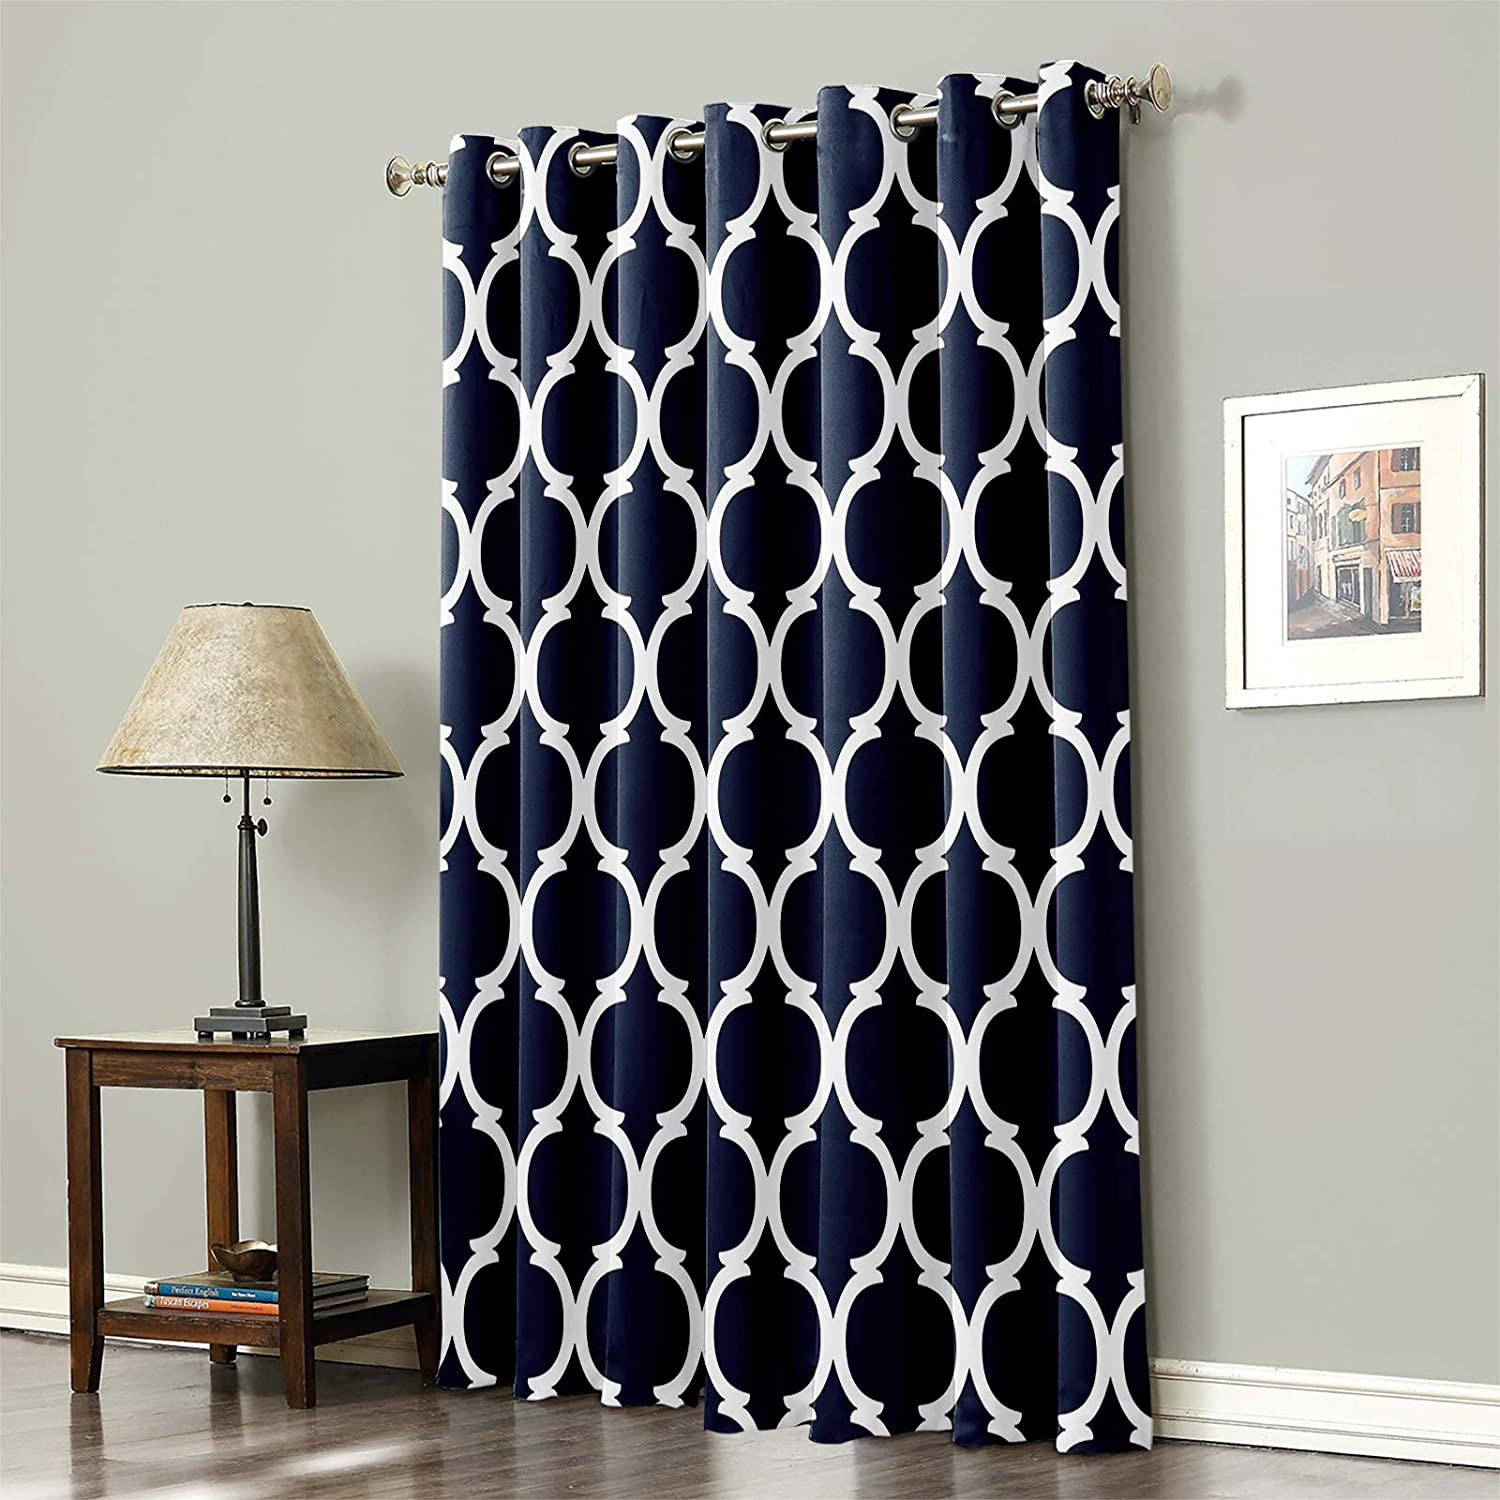 excellence FAMILYDECOR Blackout Curtain Thermal 1 Insulated Window 55% OFF